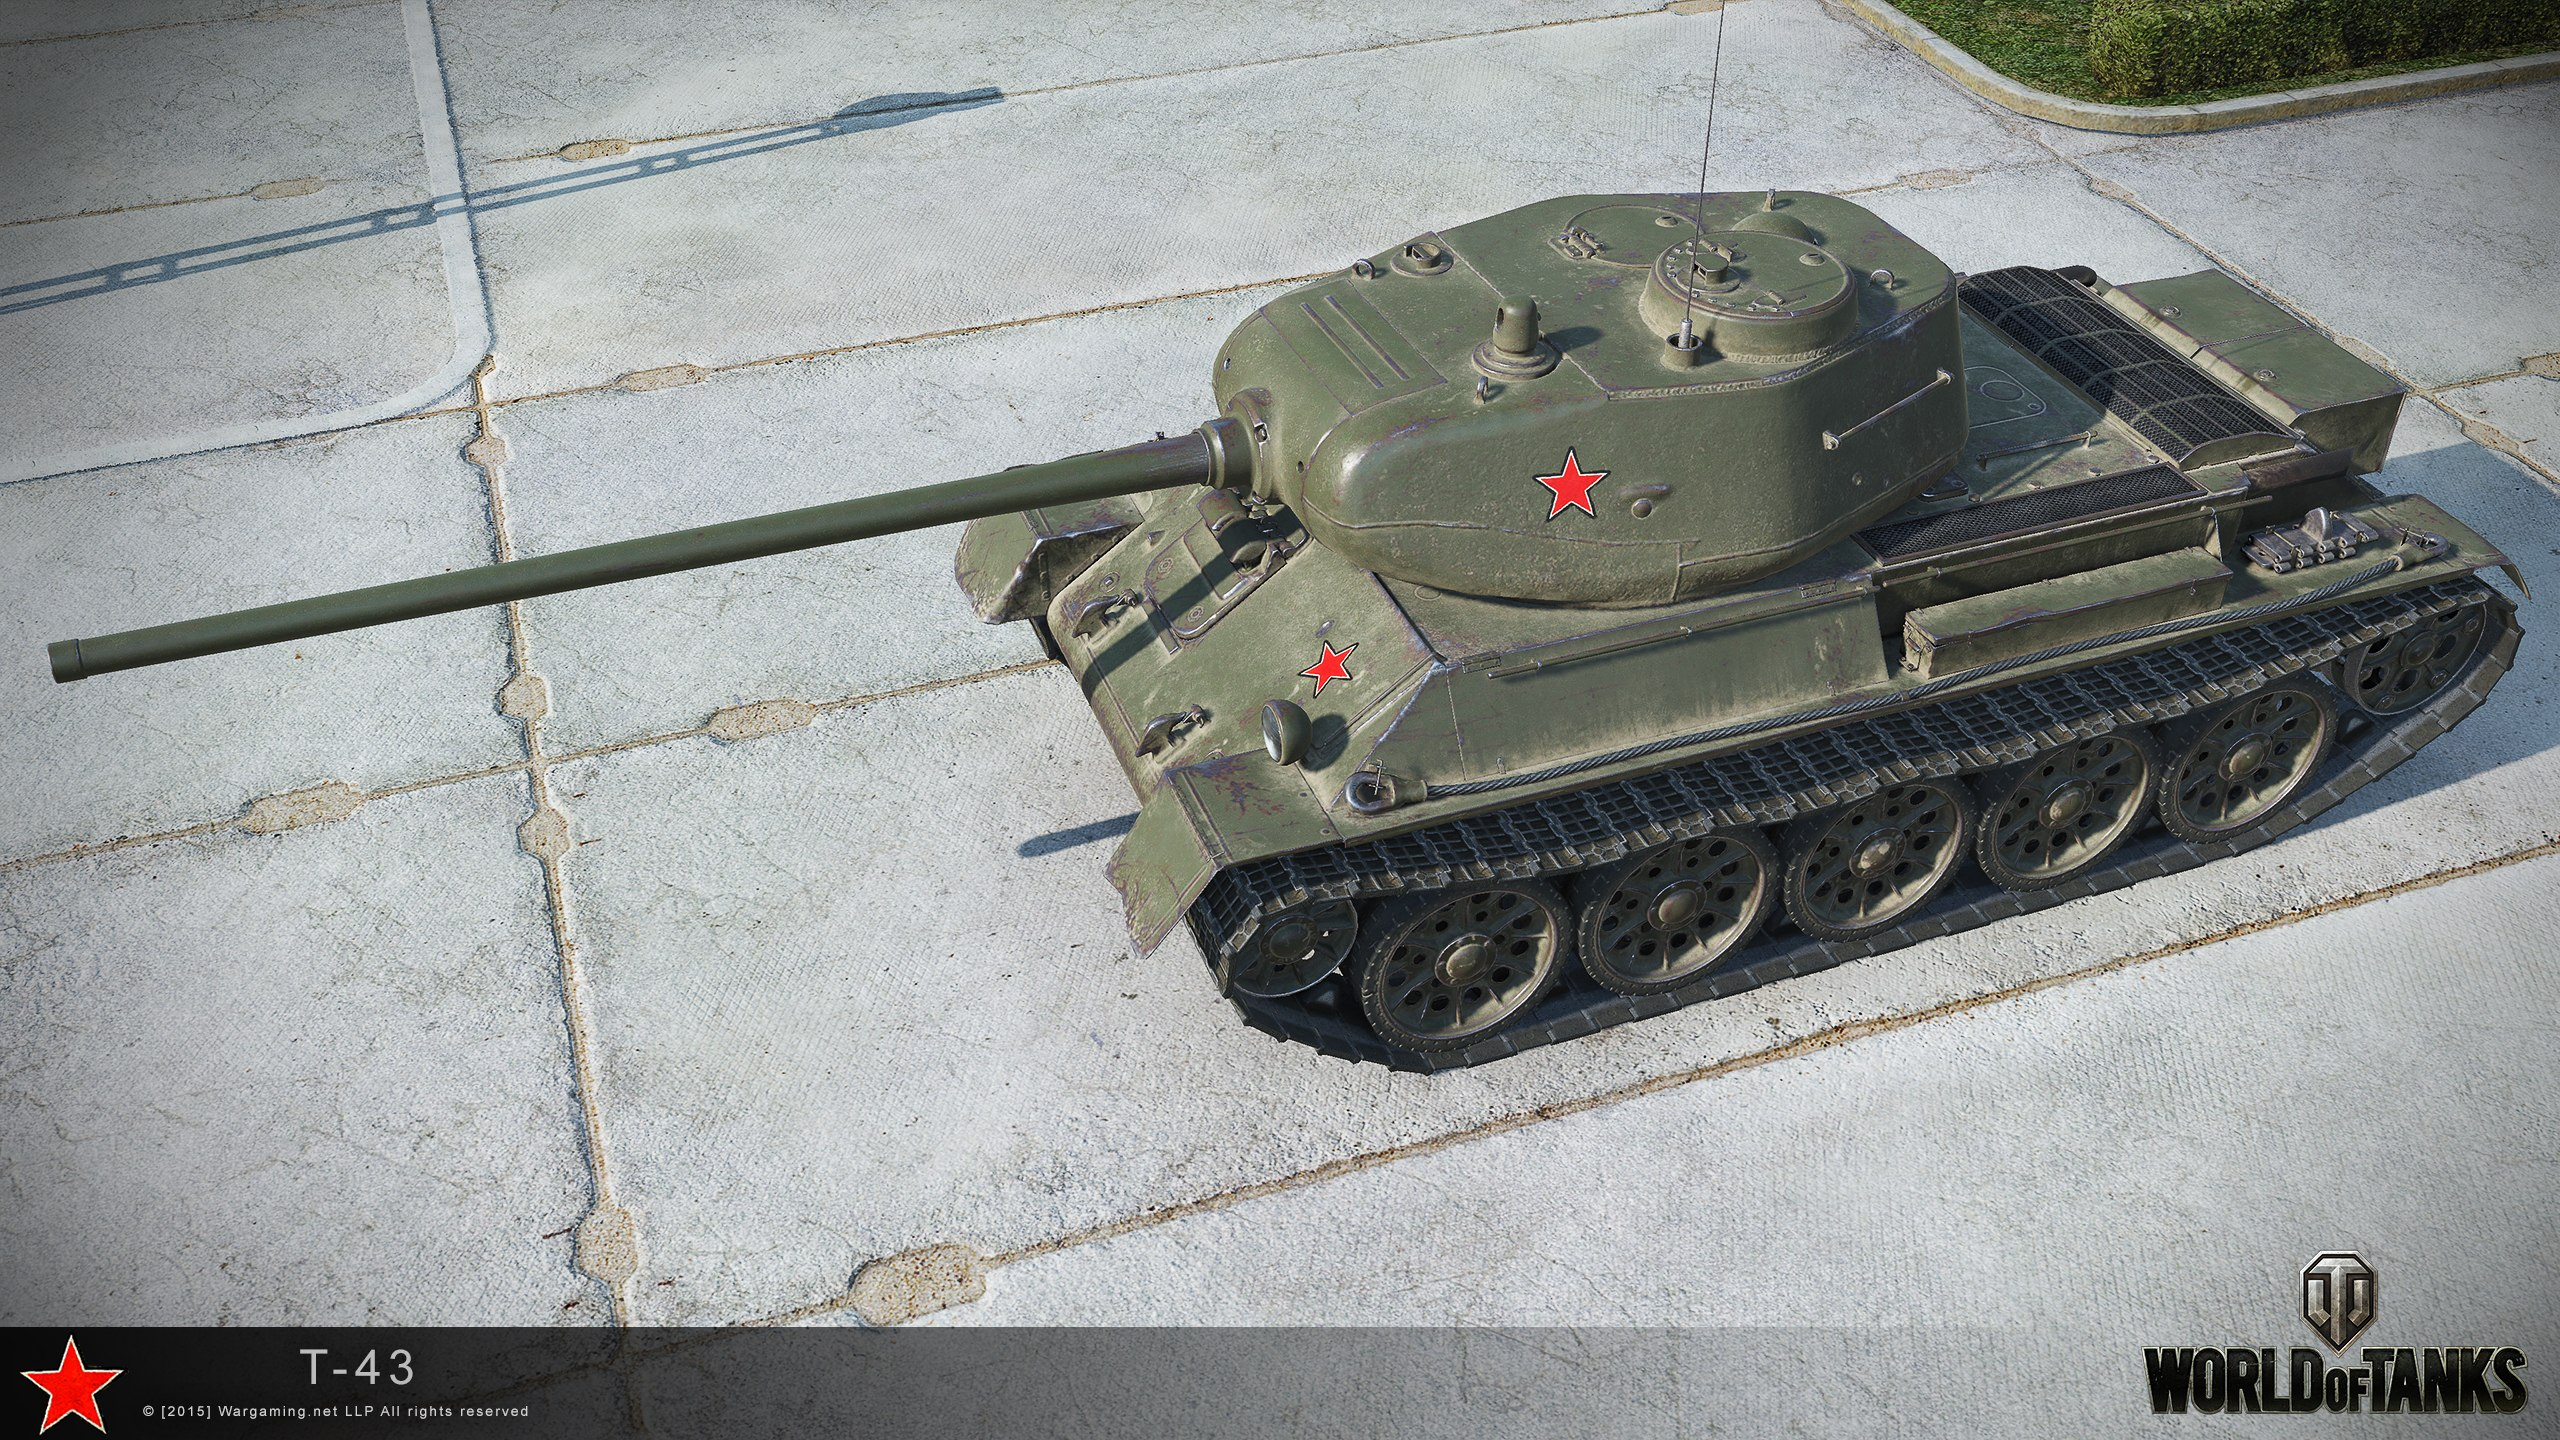 A 43 Wot t-43 hd renders - the armored patrol